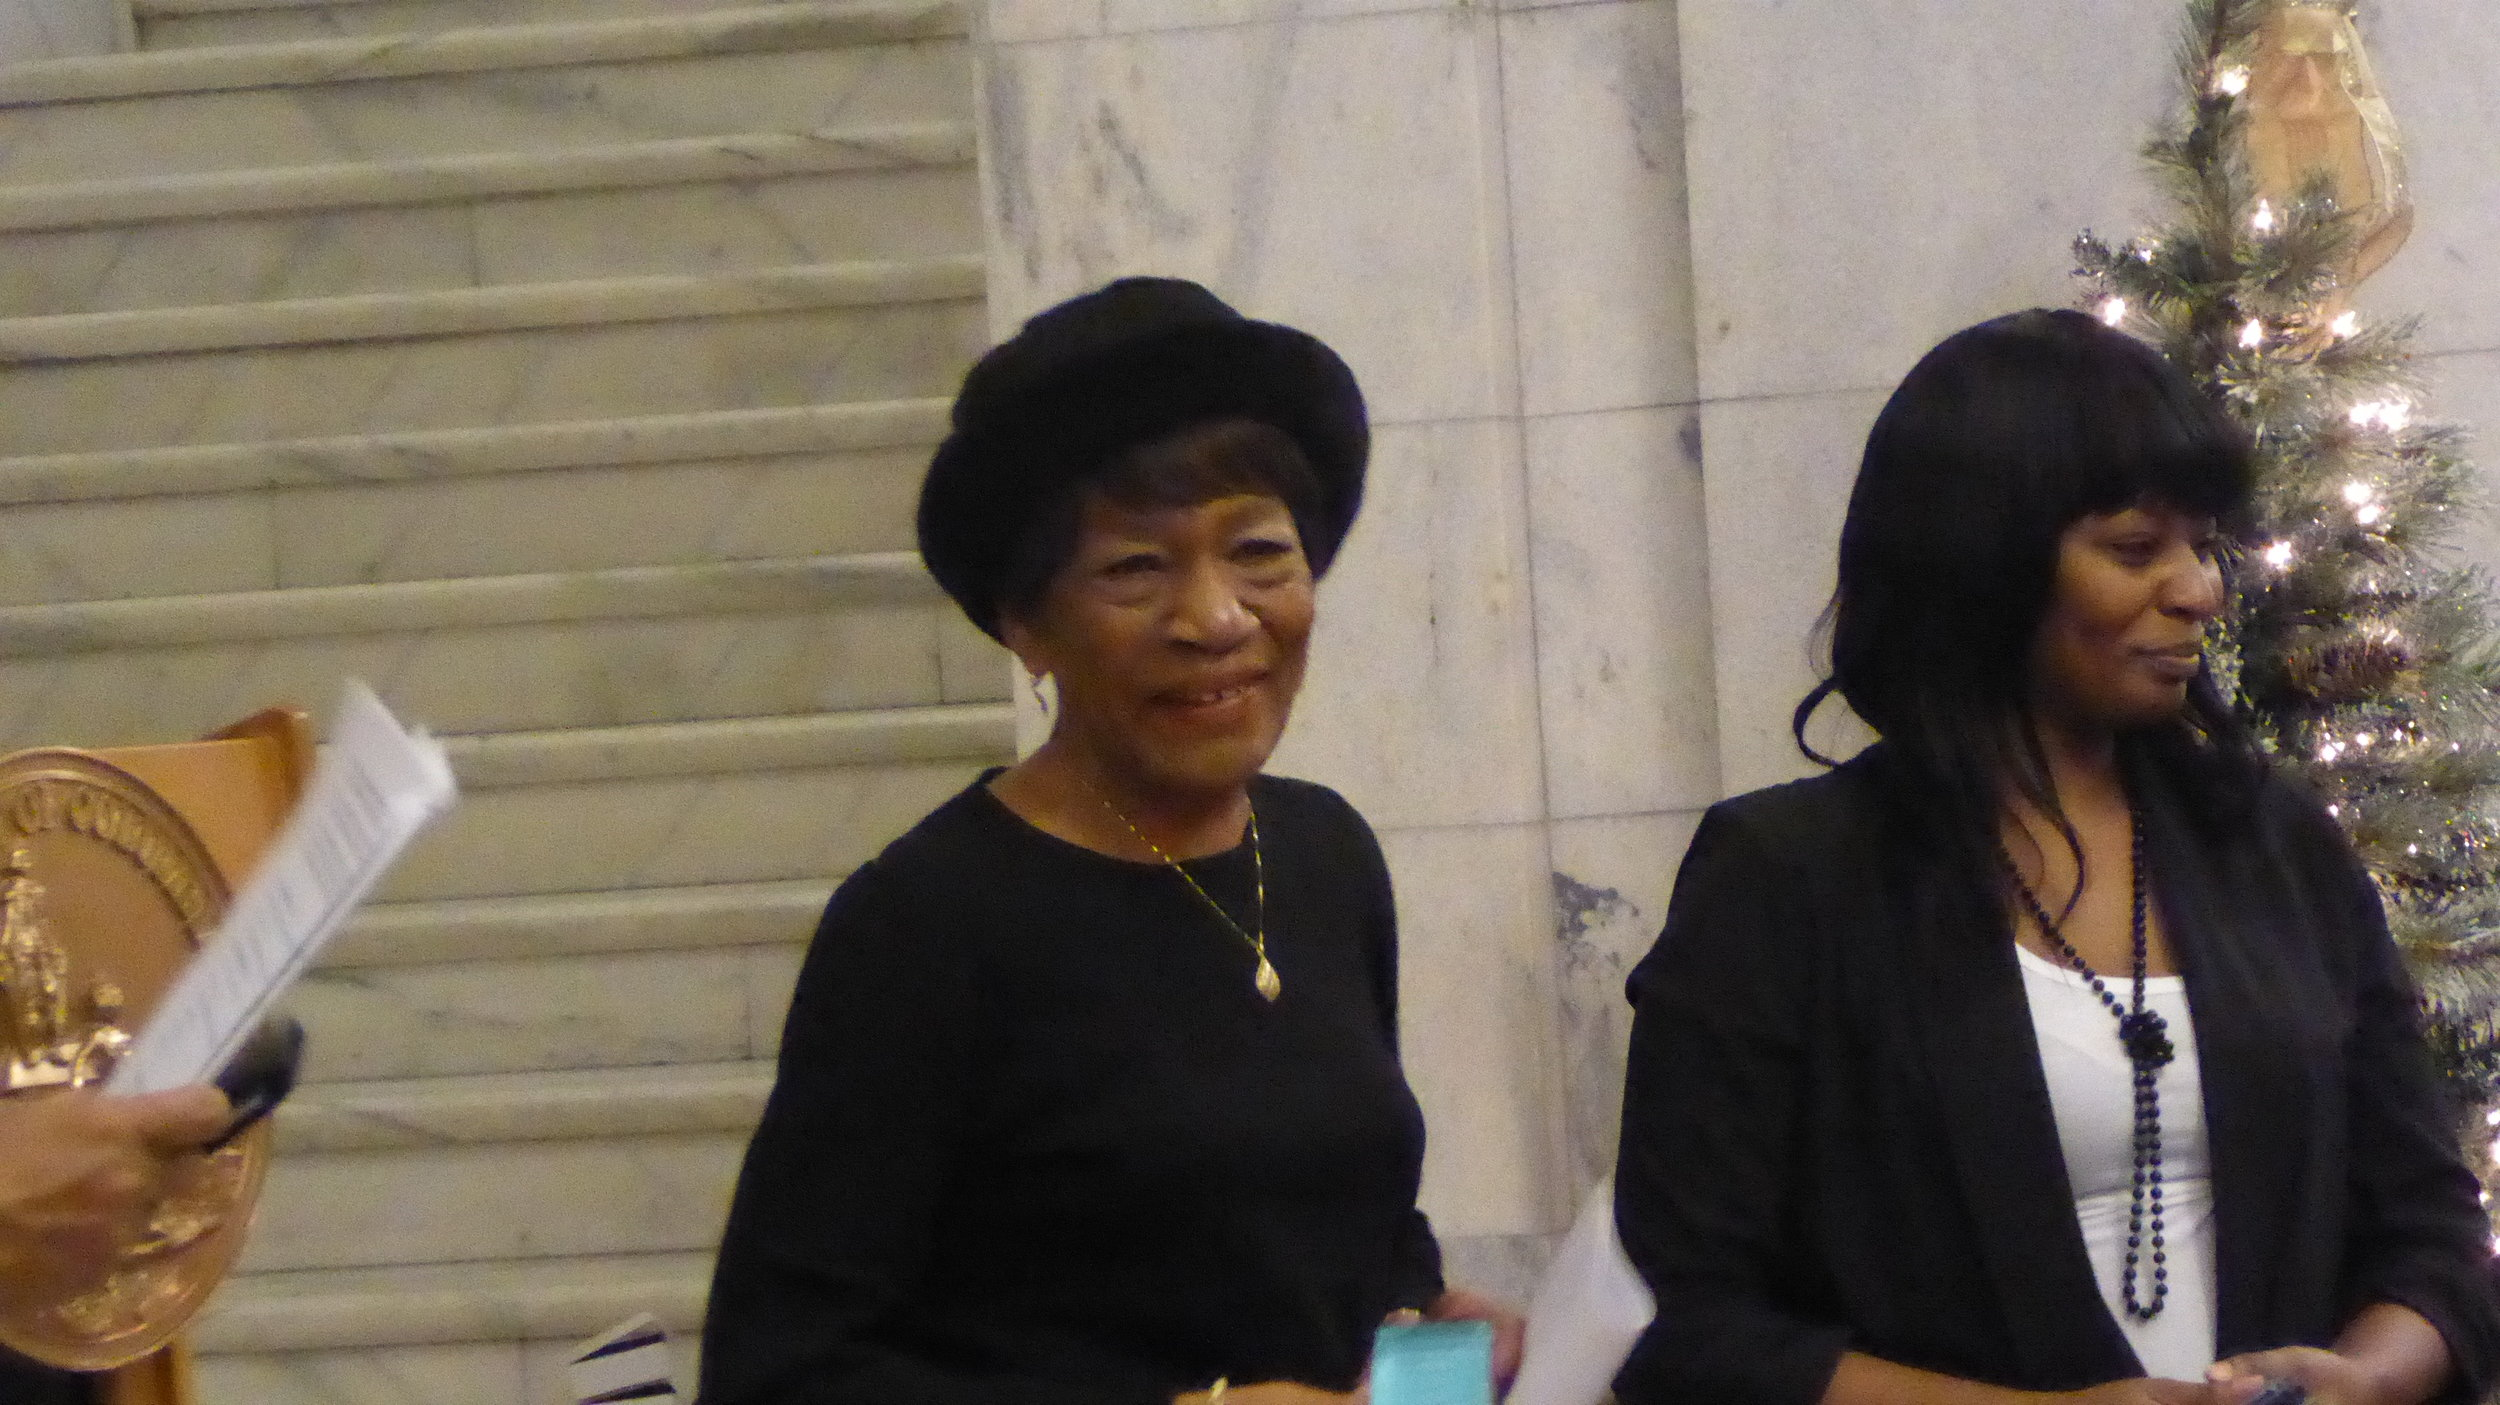 Commissioner Mary J. Cuthbert, Elected Representative and Community Leader